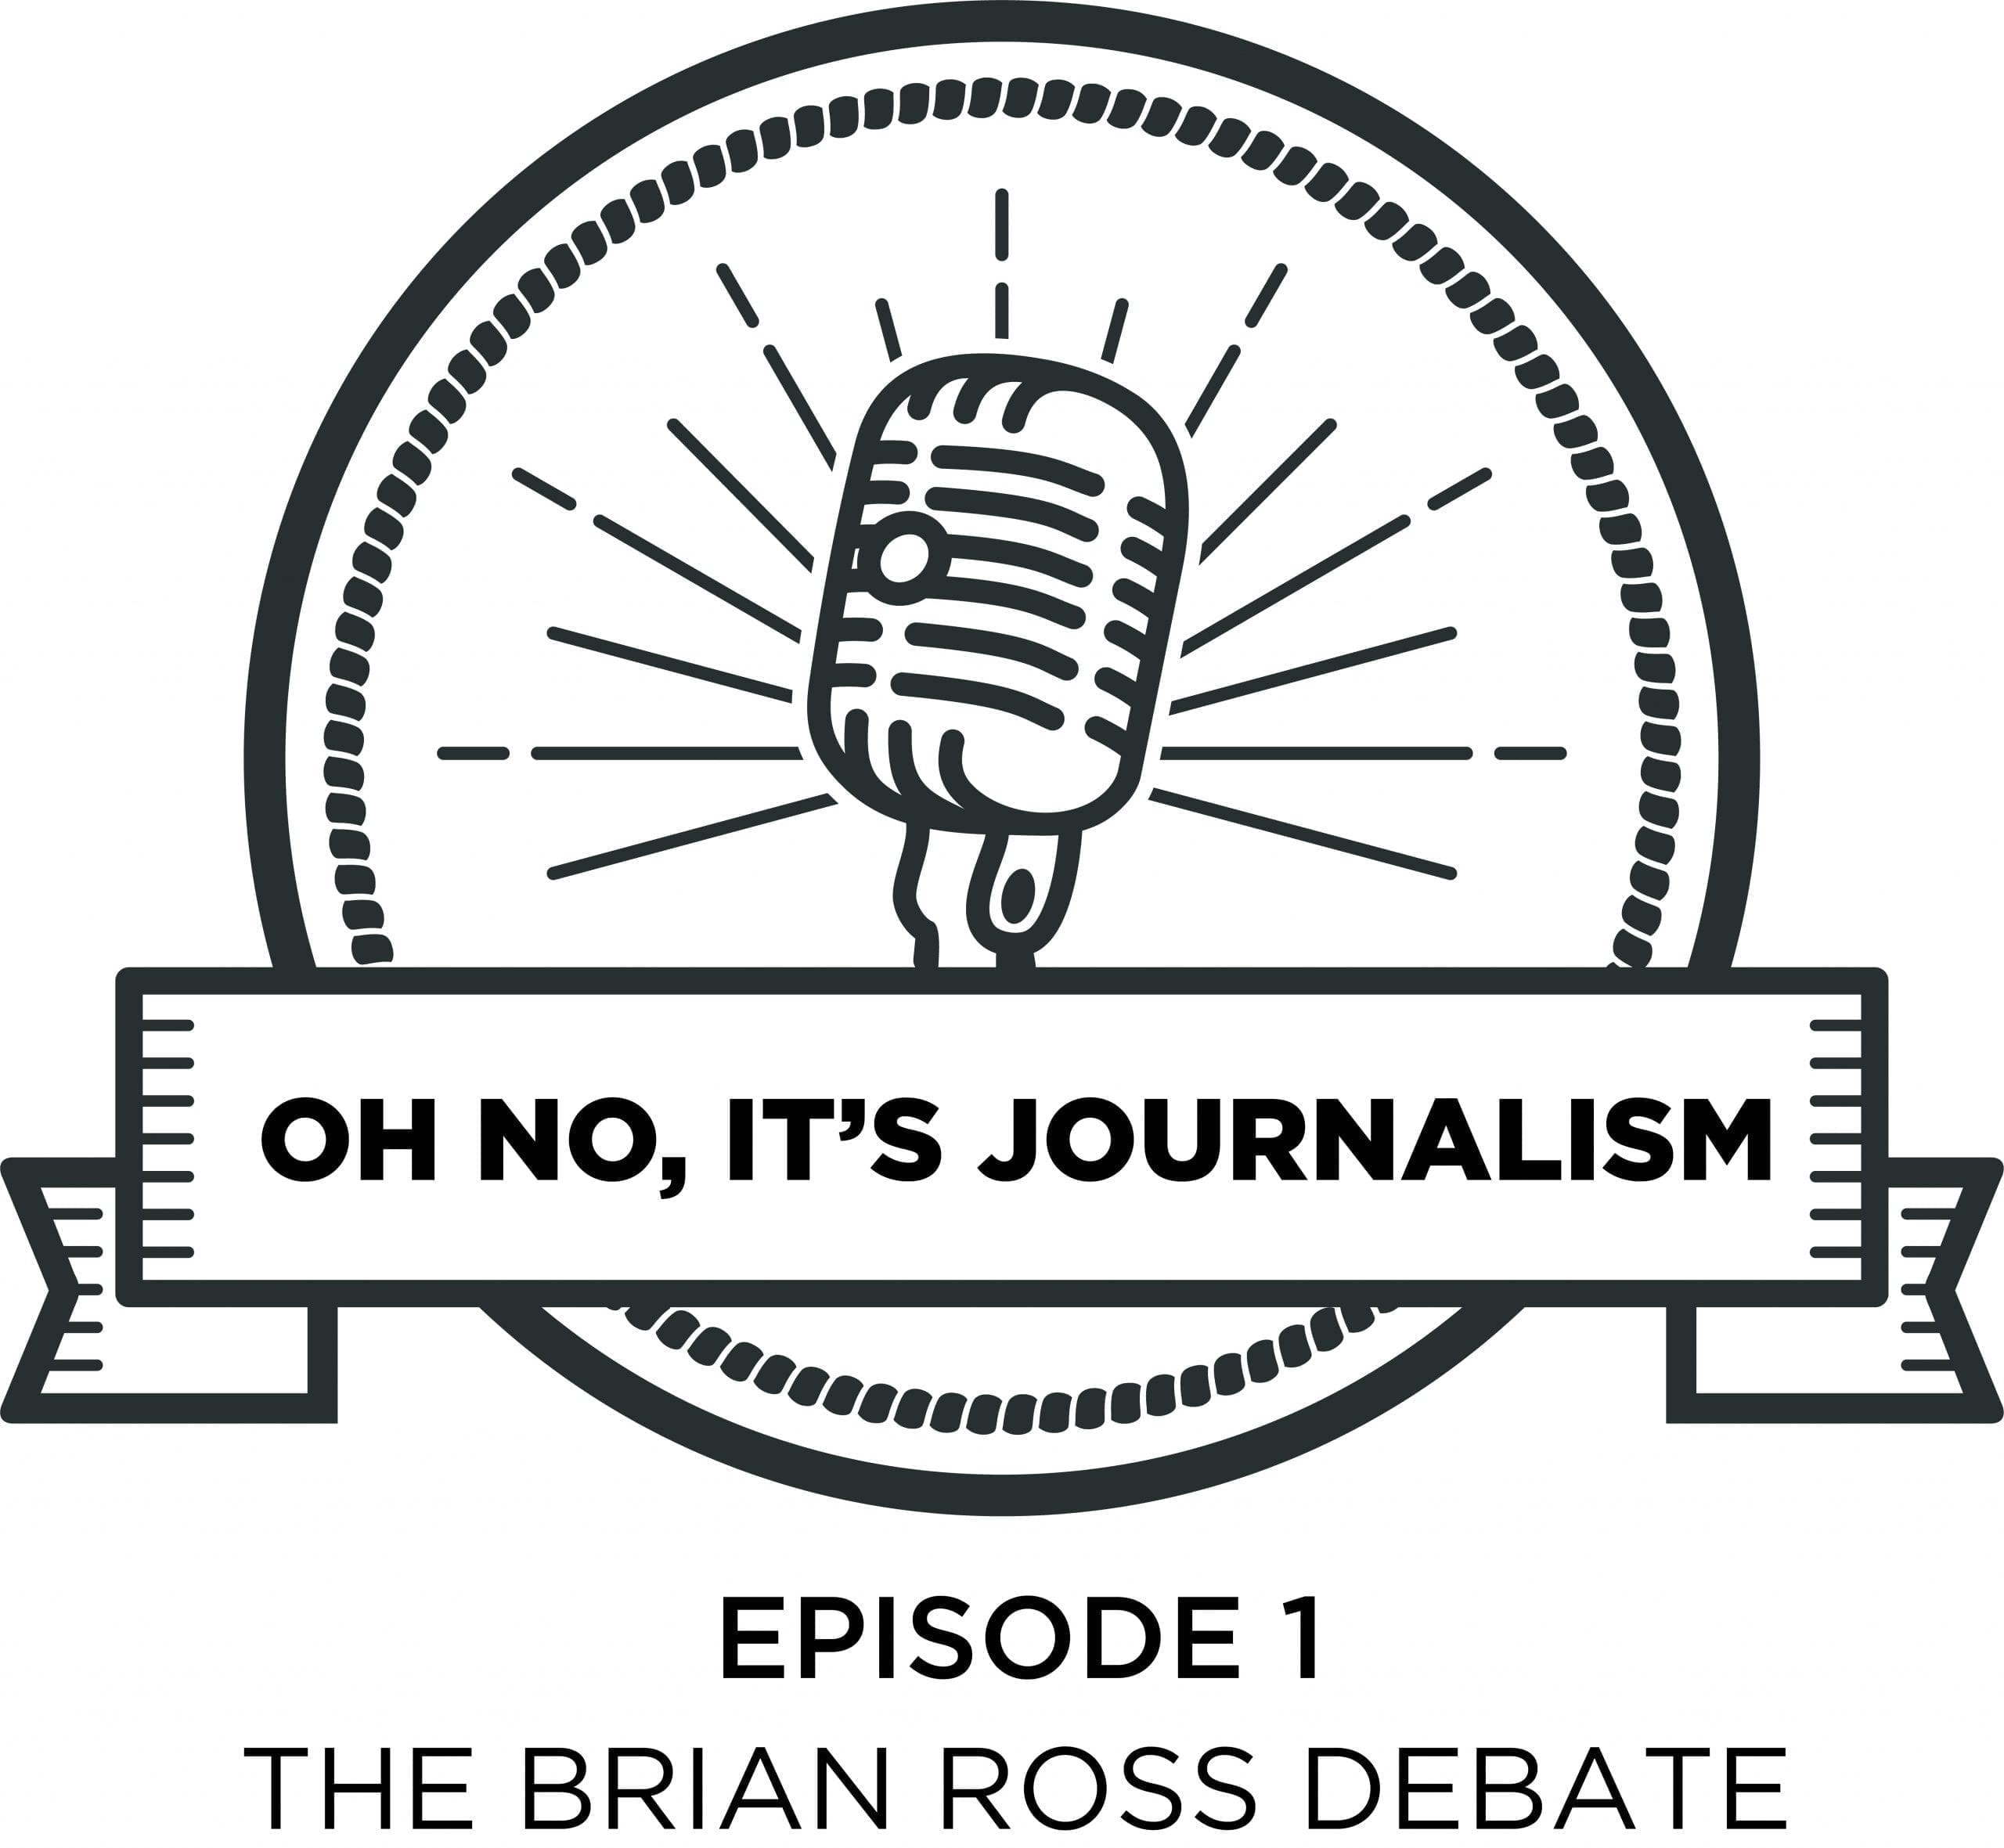 Podcast: Oh No It's Journalism – Episode 1 – The Brian Ross Debate